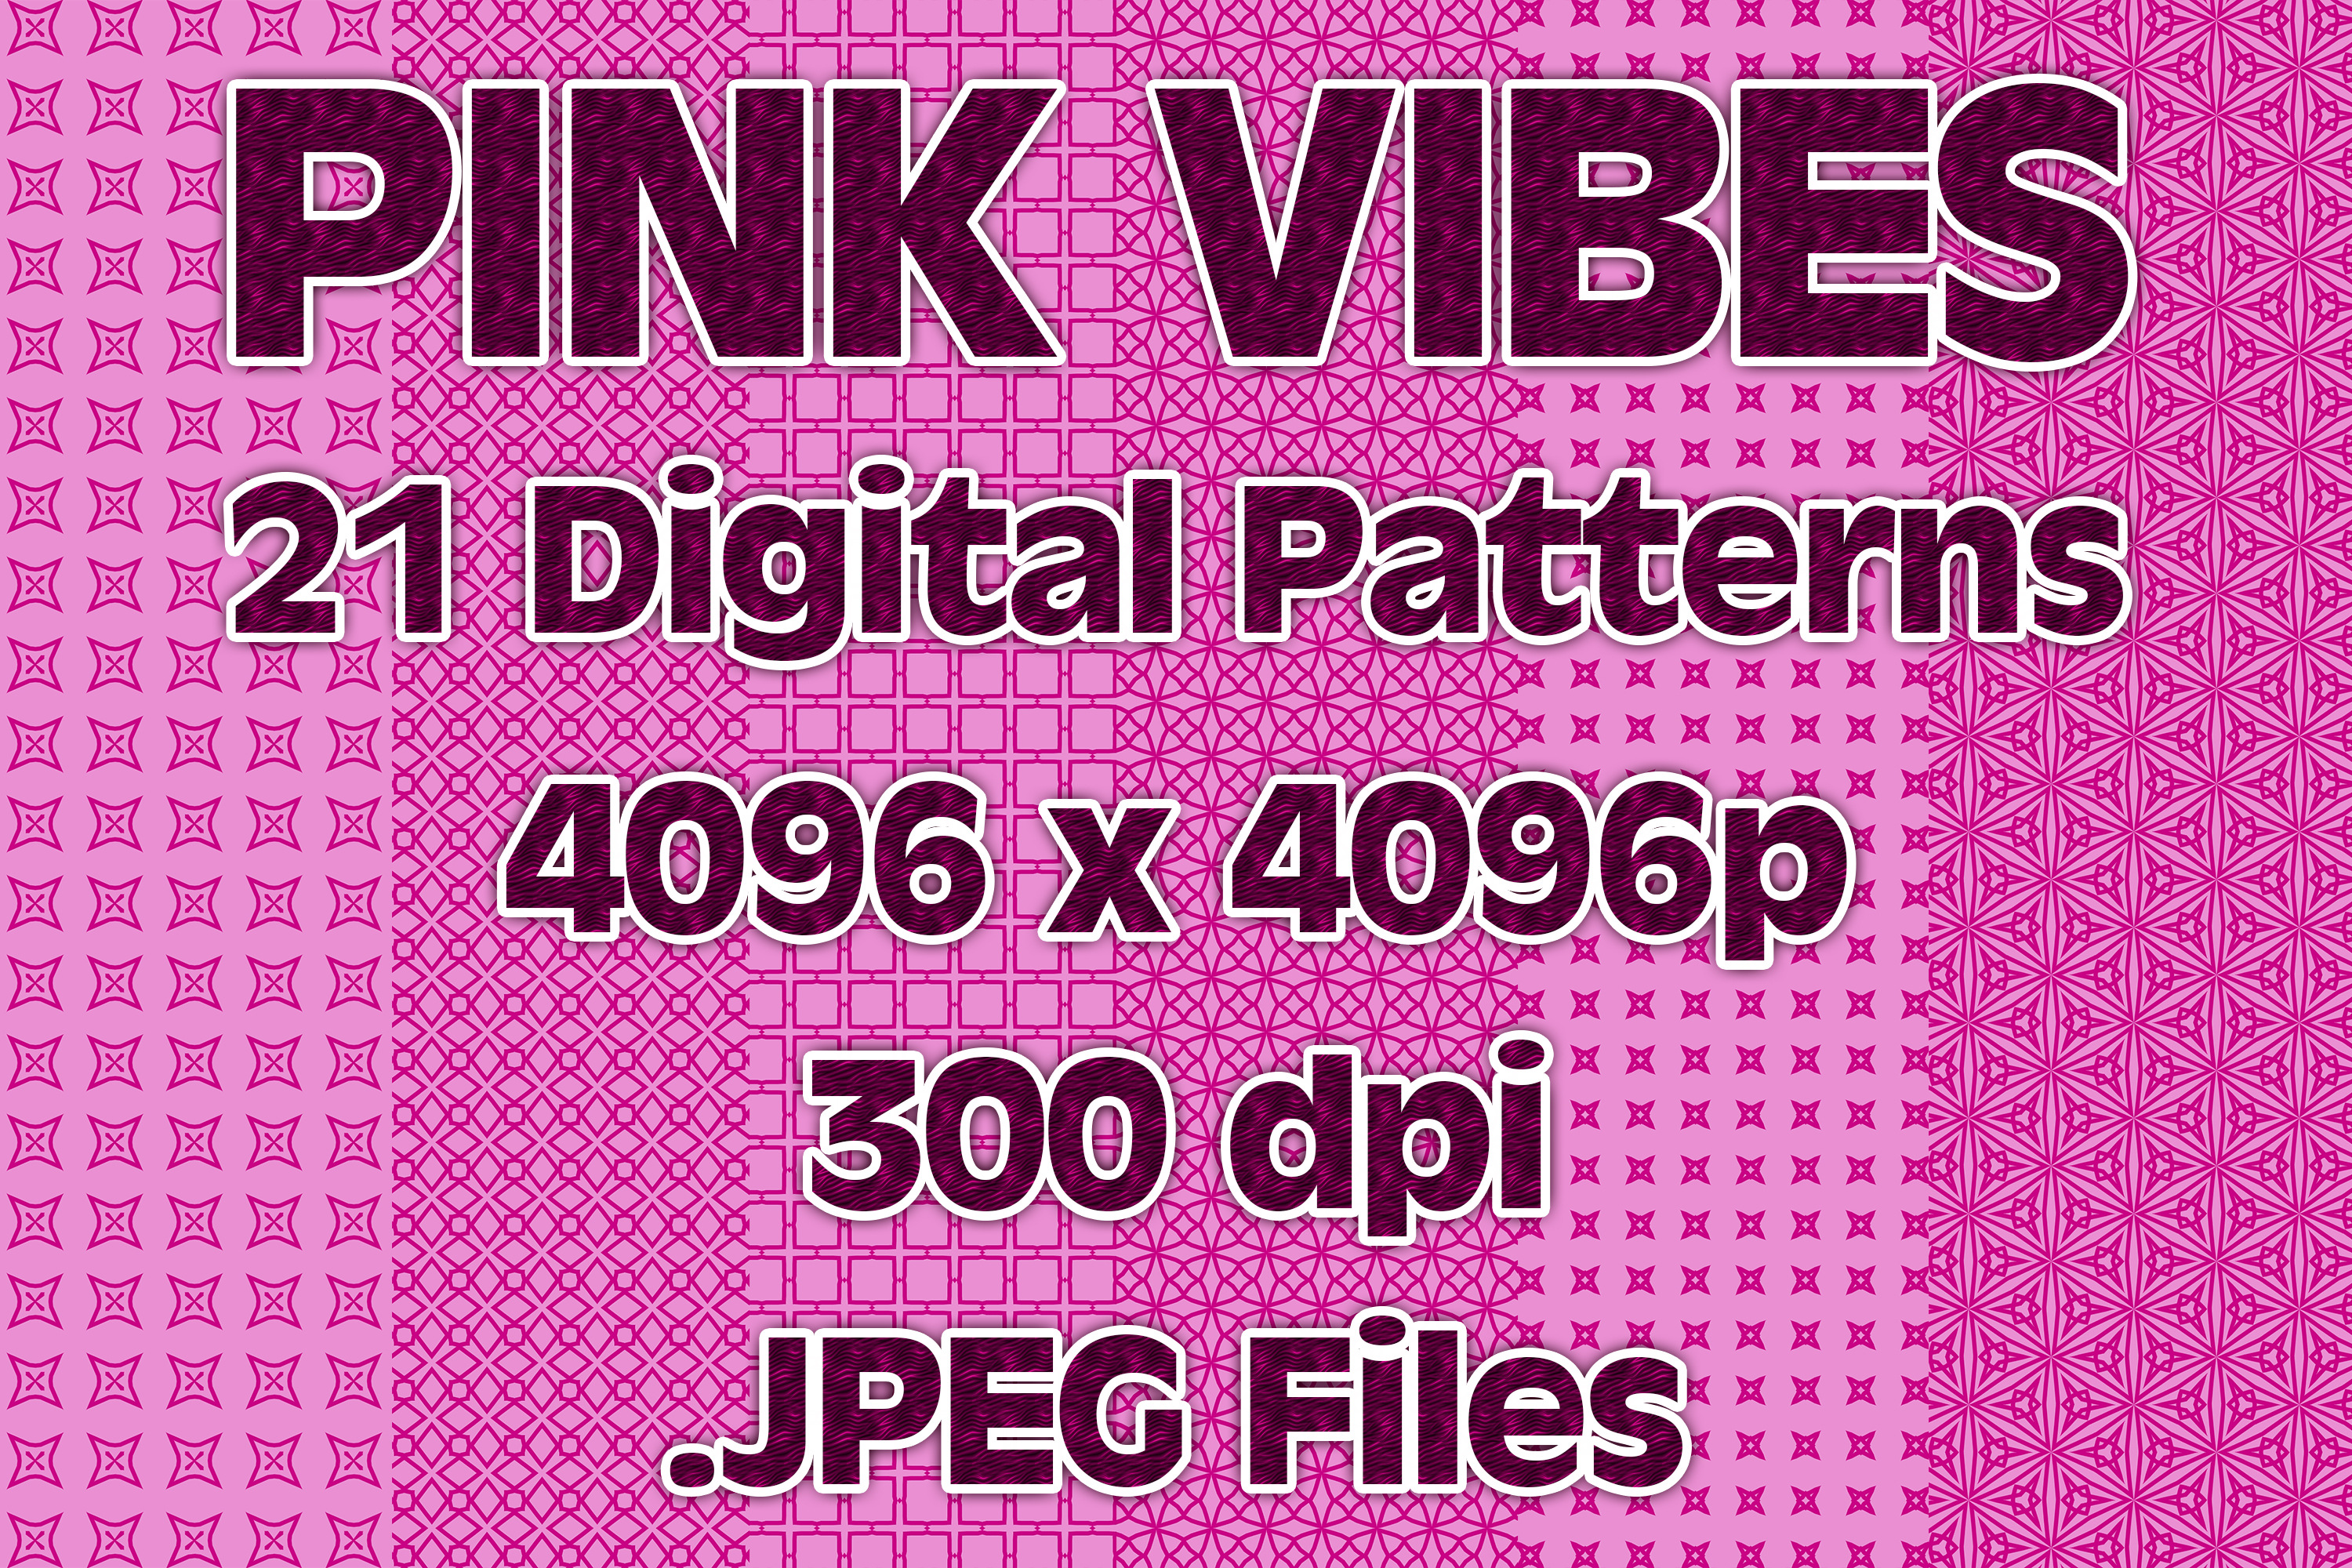 Pink Vibes example image 1